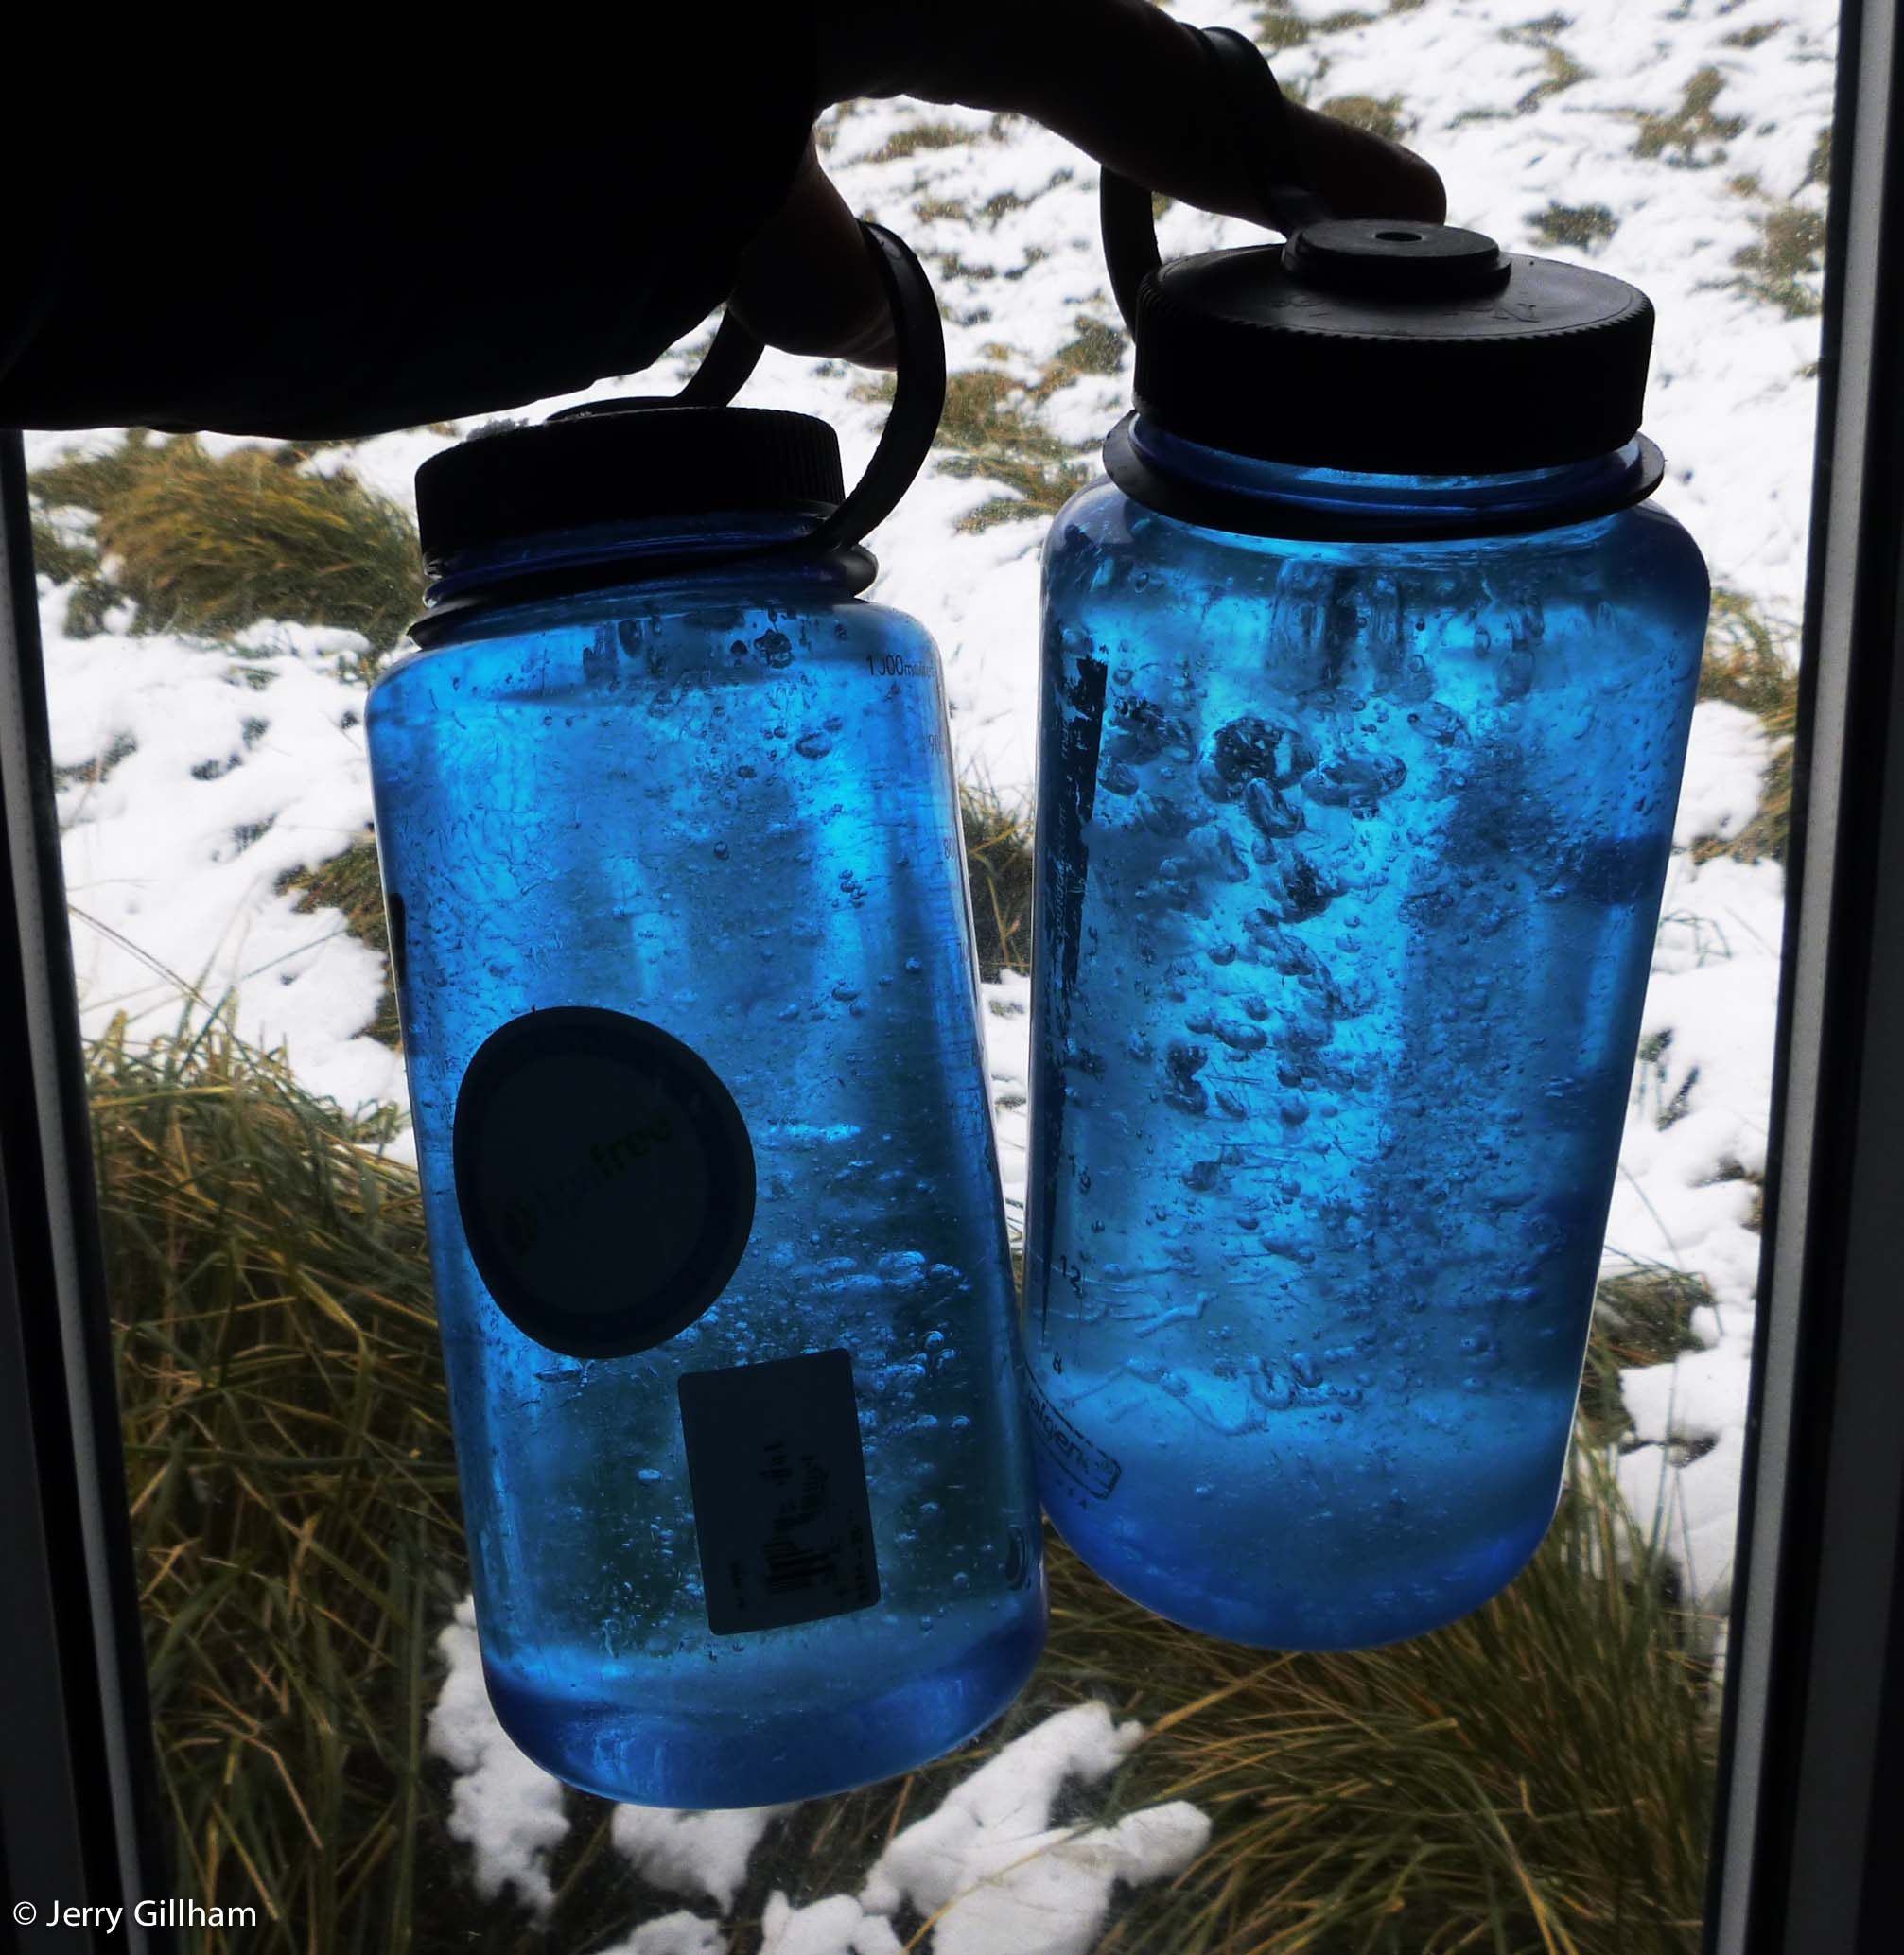 One of my rambles was to the field hut to check supplies over there. Our water situation wasn't particularly useful as these nalgene bottles had frozen solid (though I was impressed they hadn't broken). Luckily I had a bottle of fresh water with which to make a cup of tea.